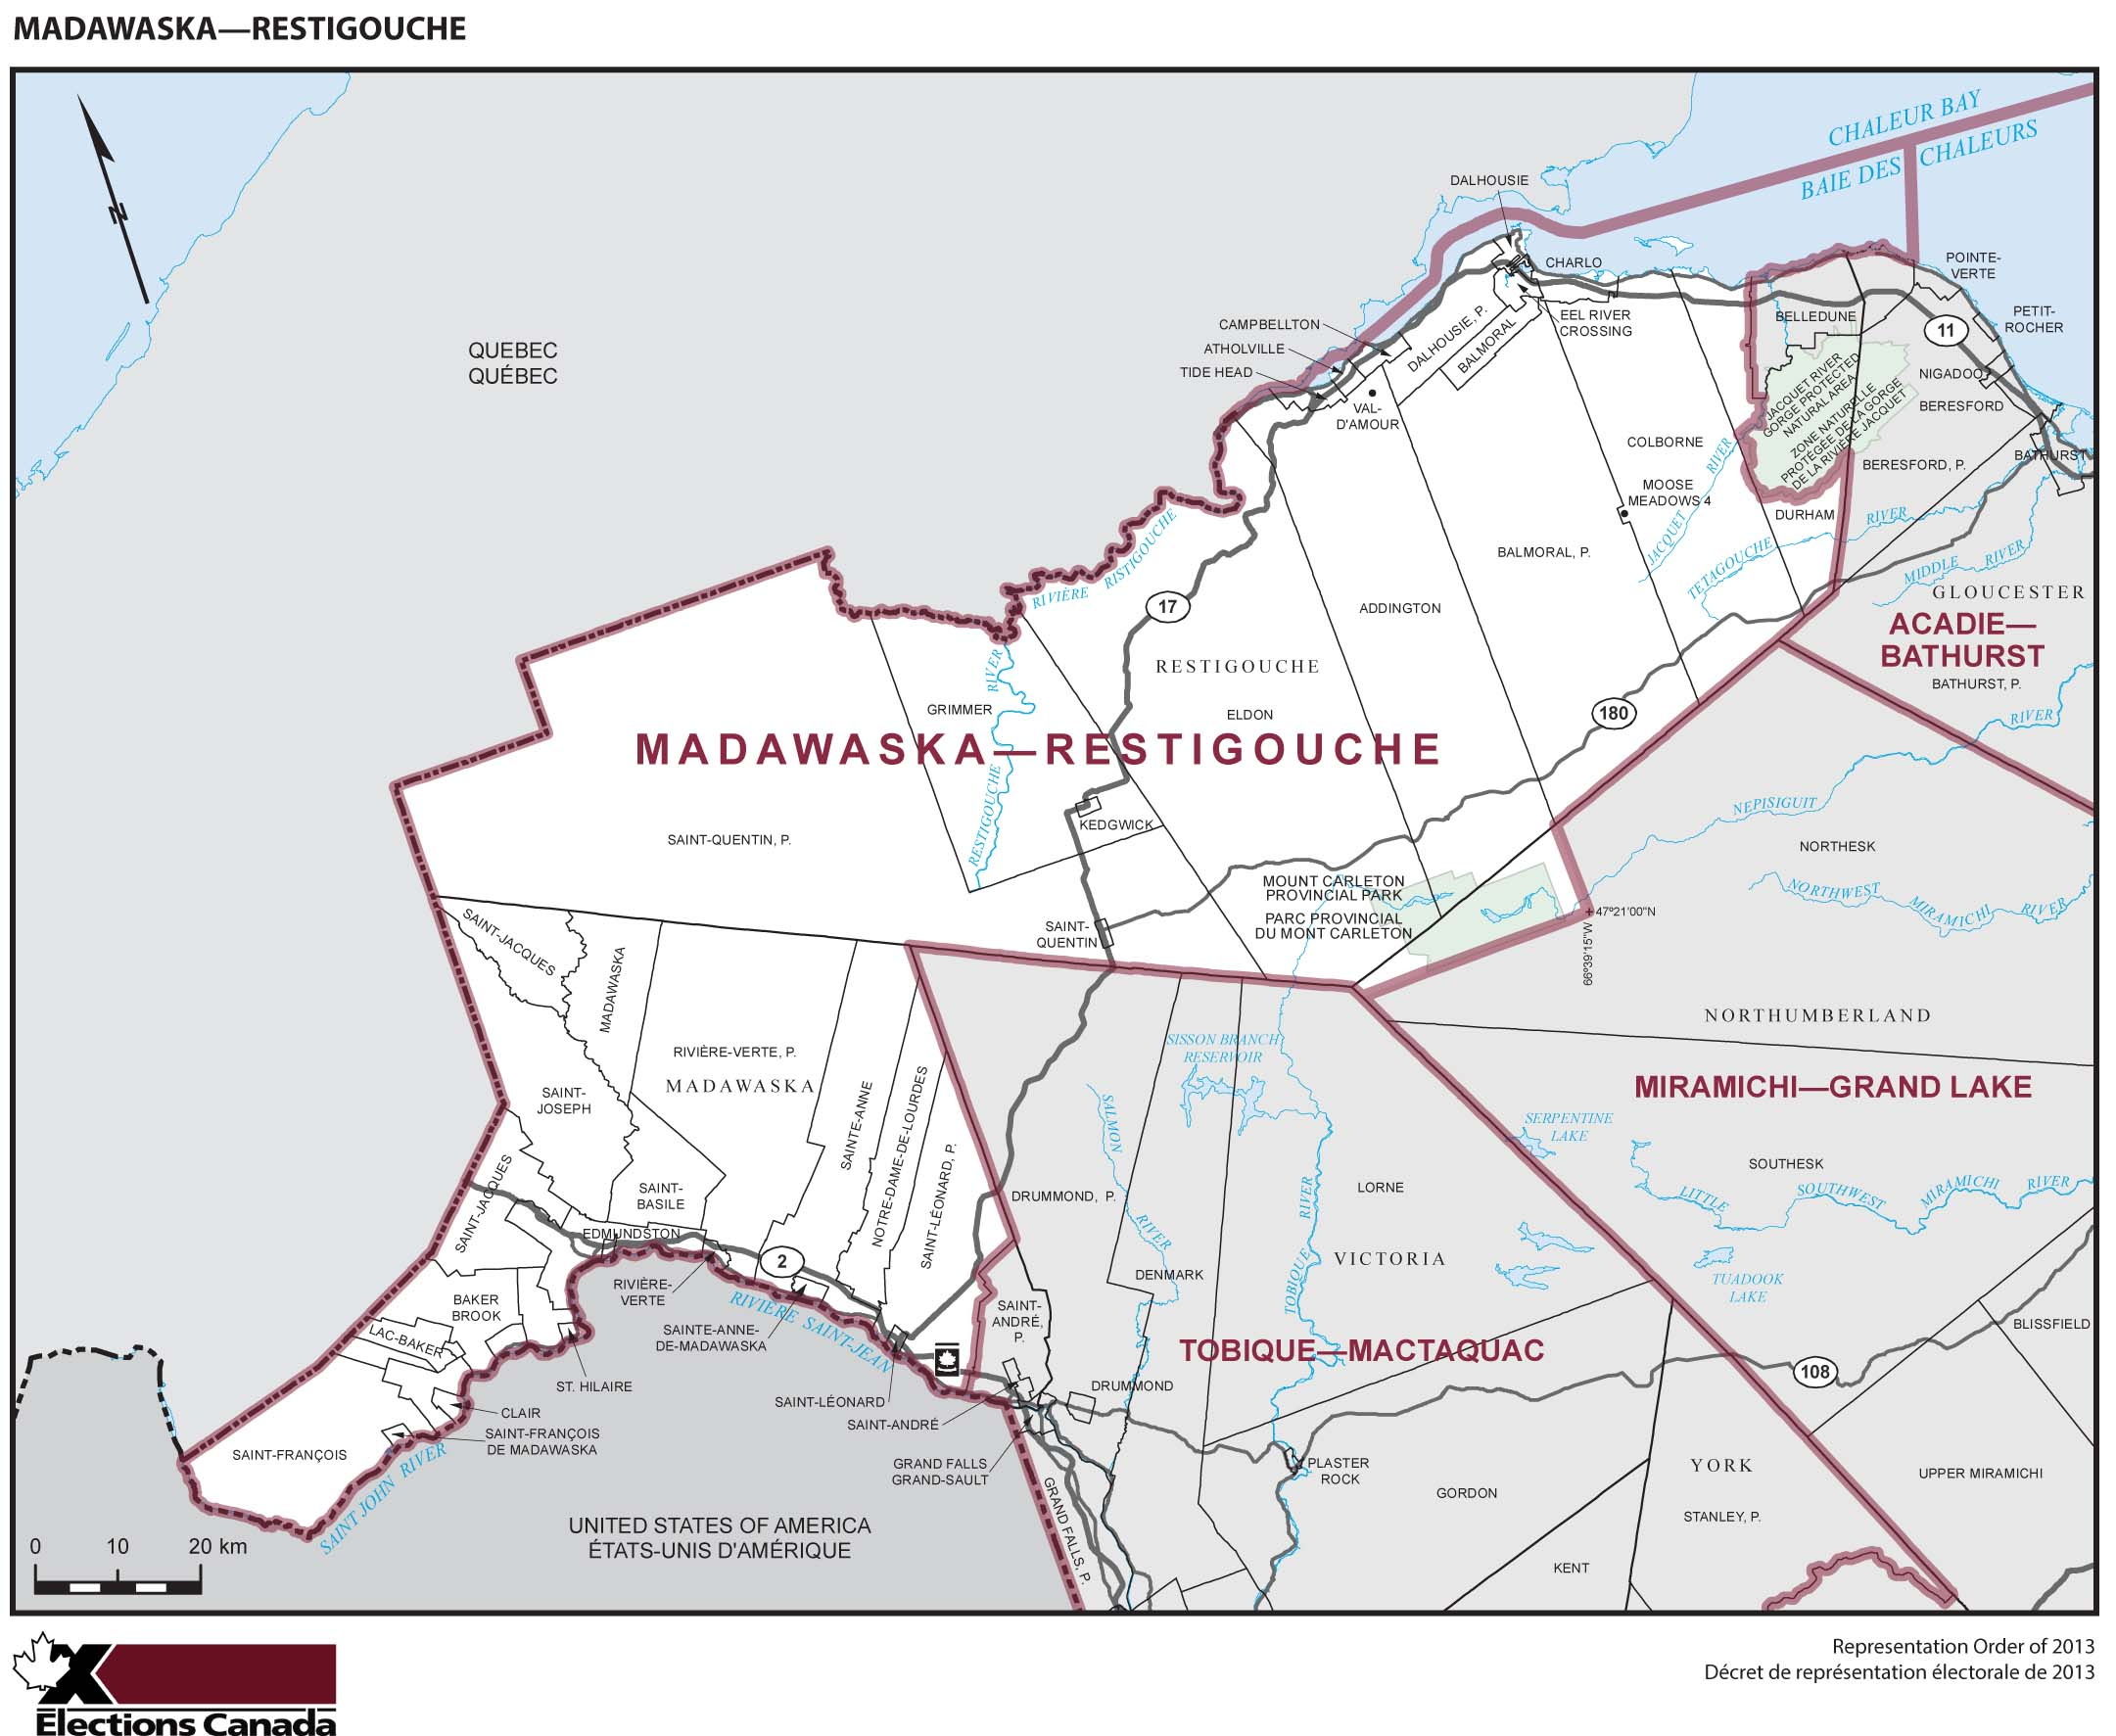 Map: Madawaska--Restigouche, Federal electoral district, 2013 Representation Order (in white), New Brunswick